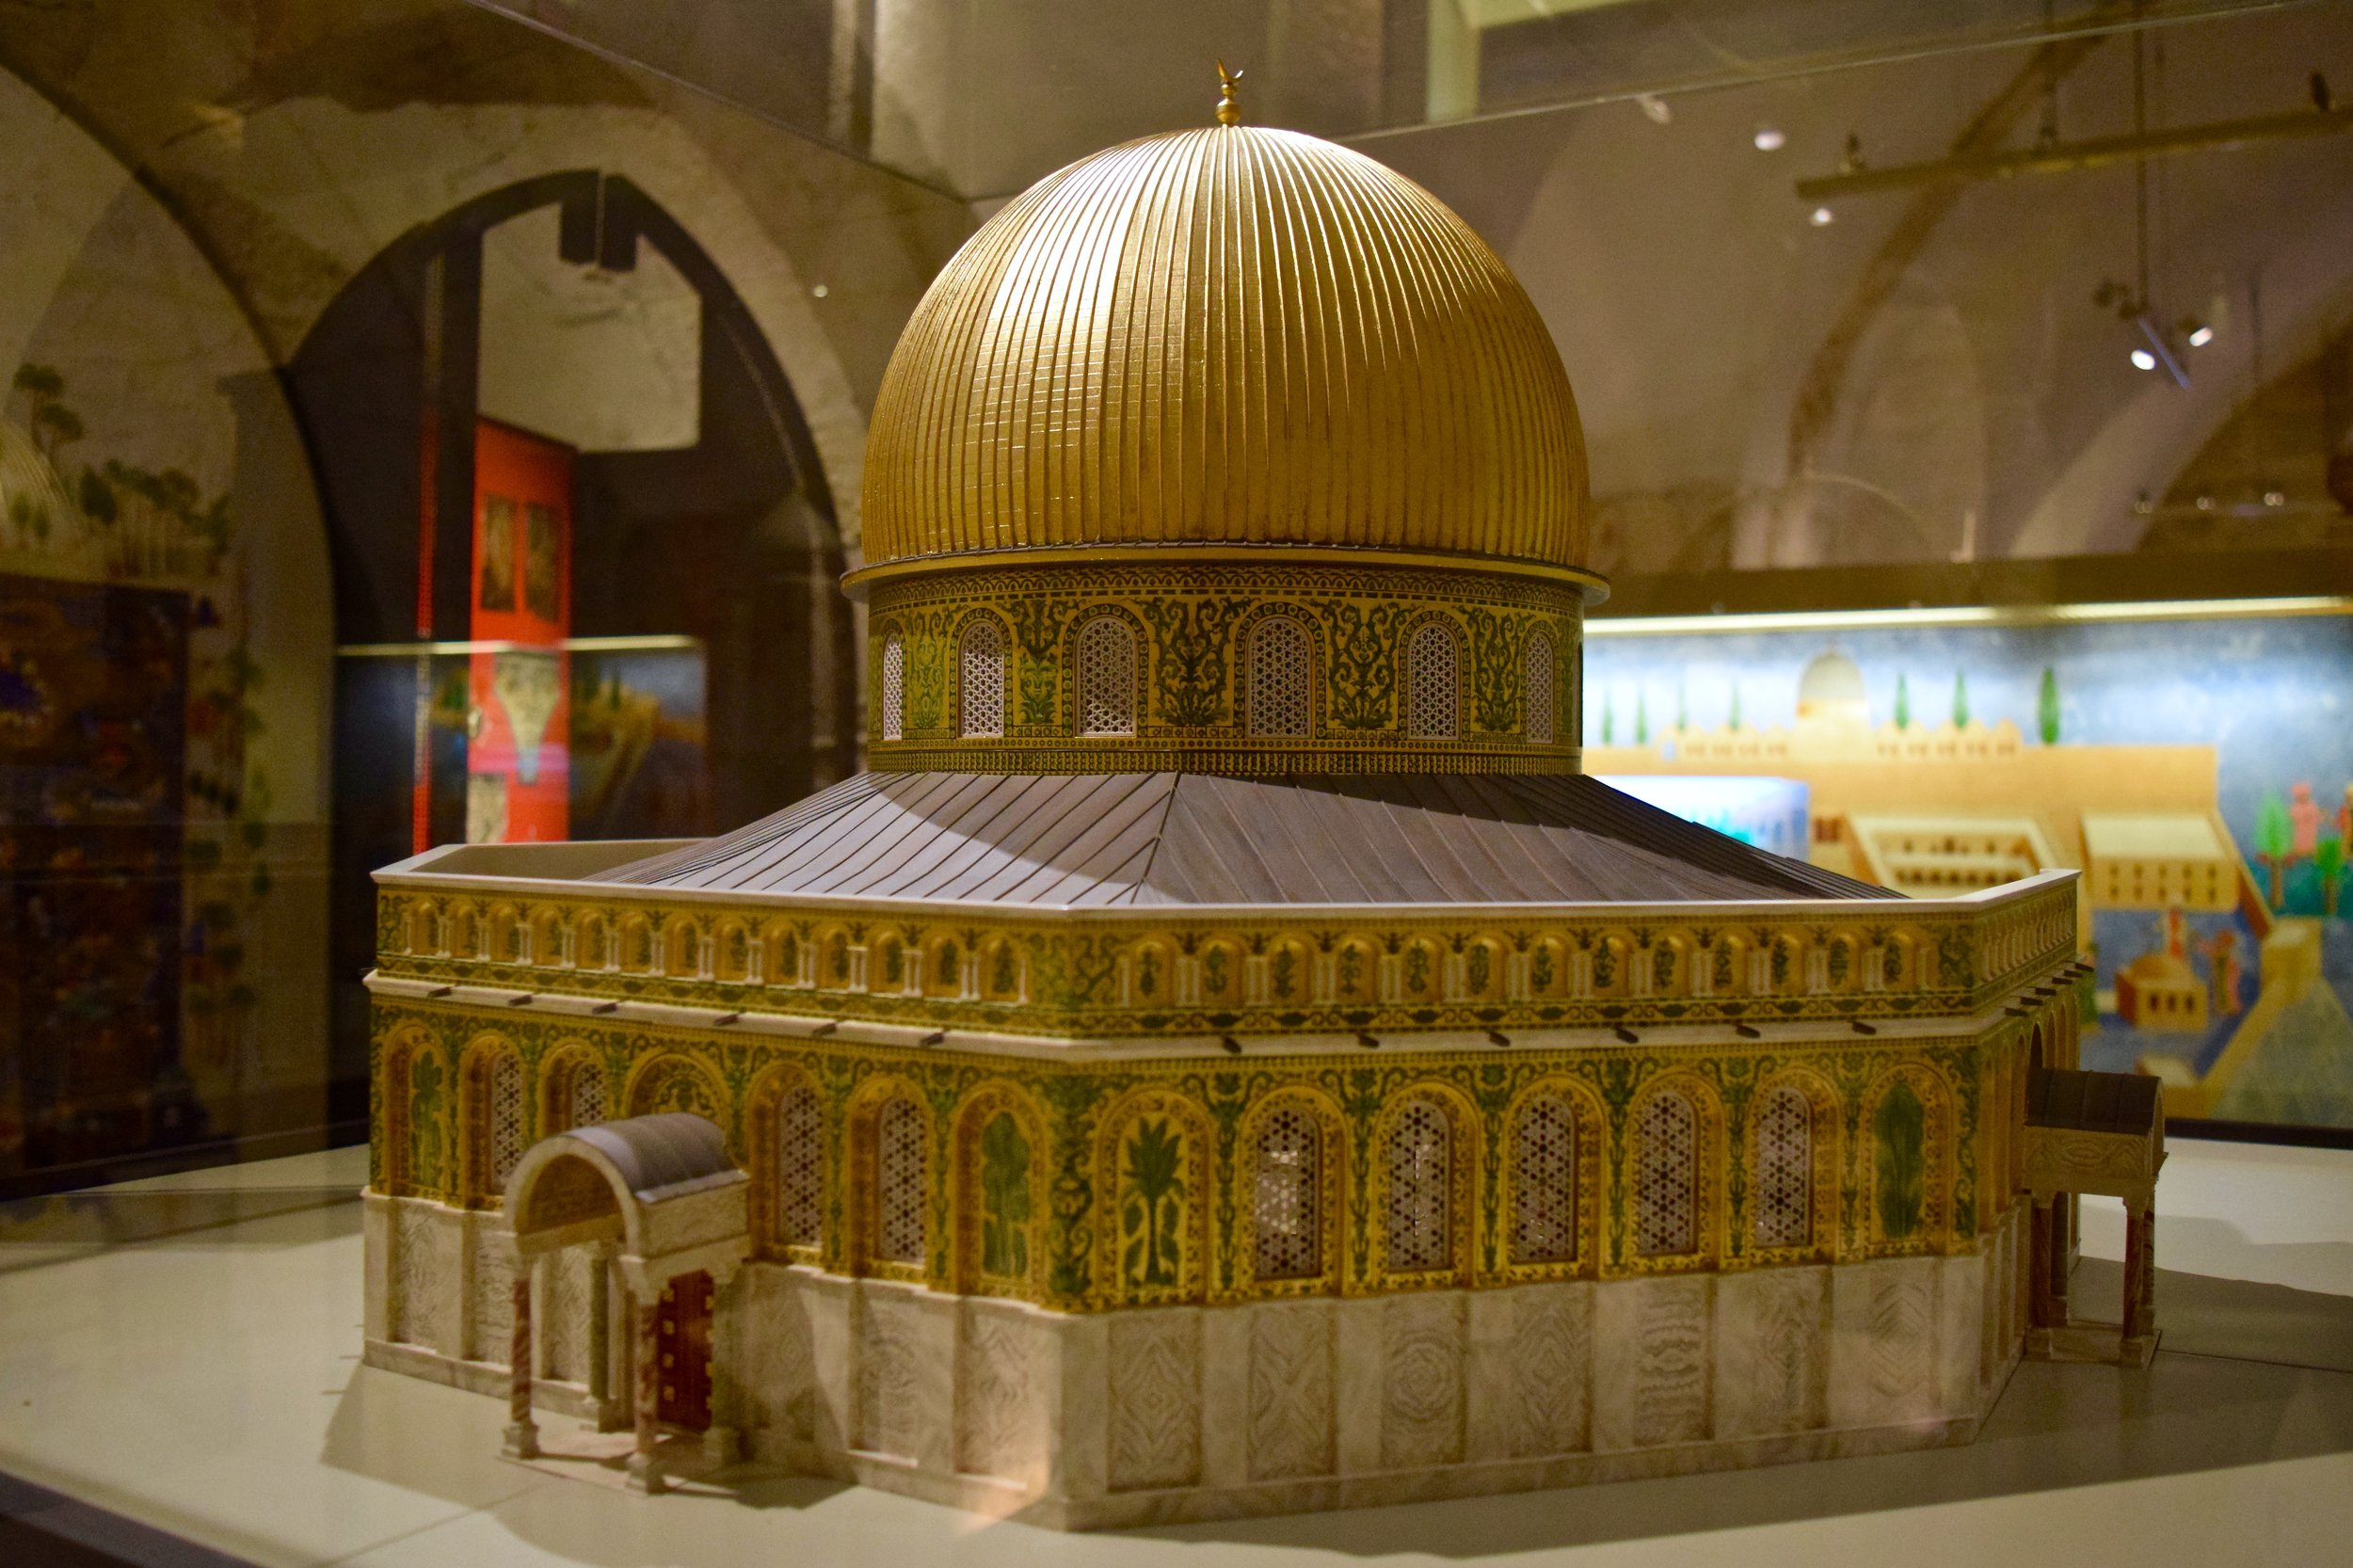 Mockup of the Dome of the Rock